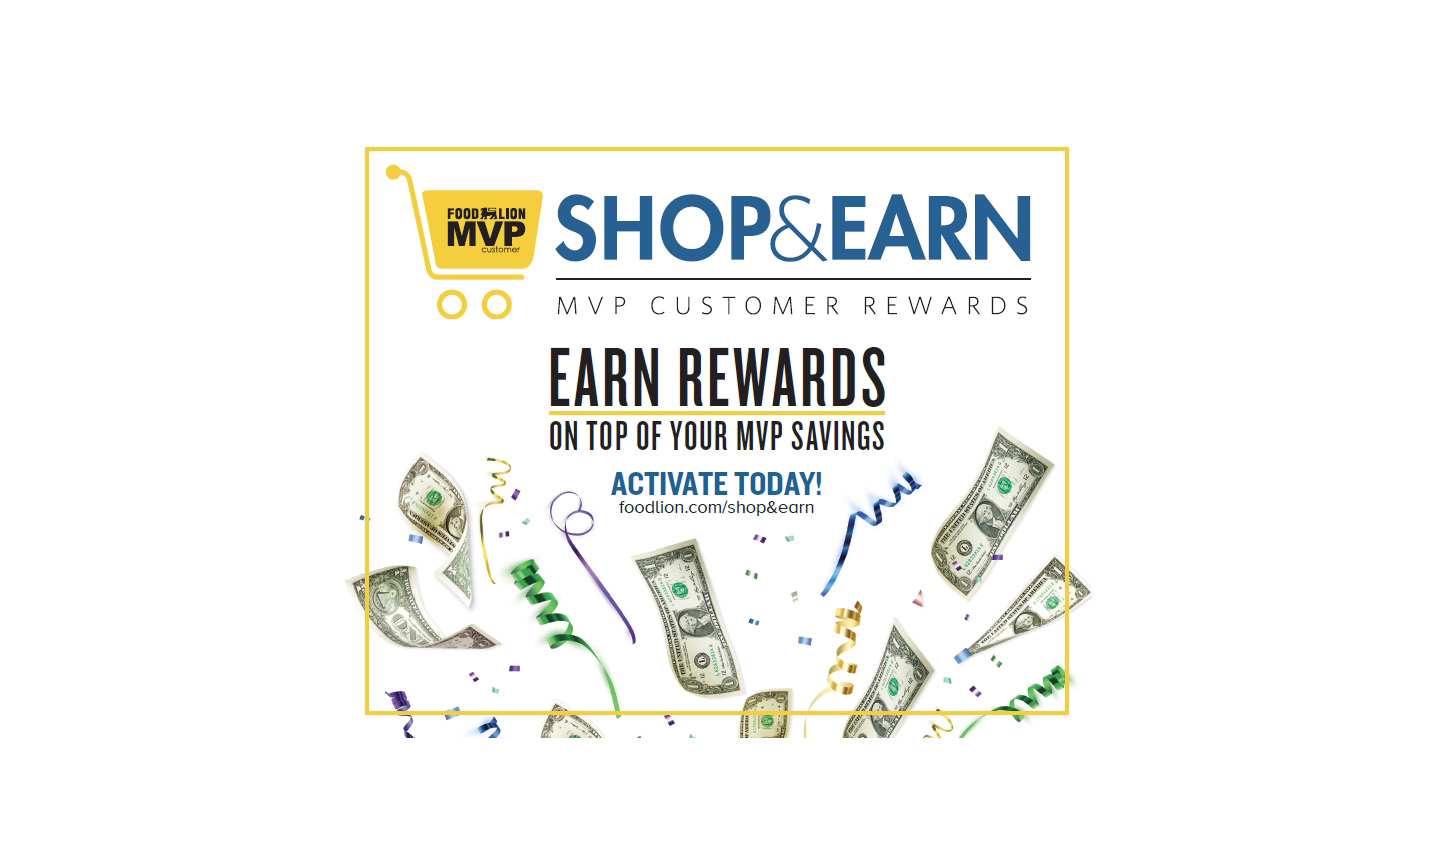 Food Lion Shop & Earn graphic